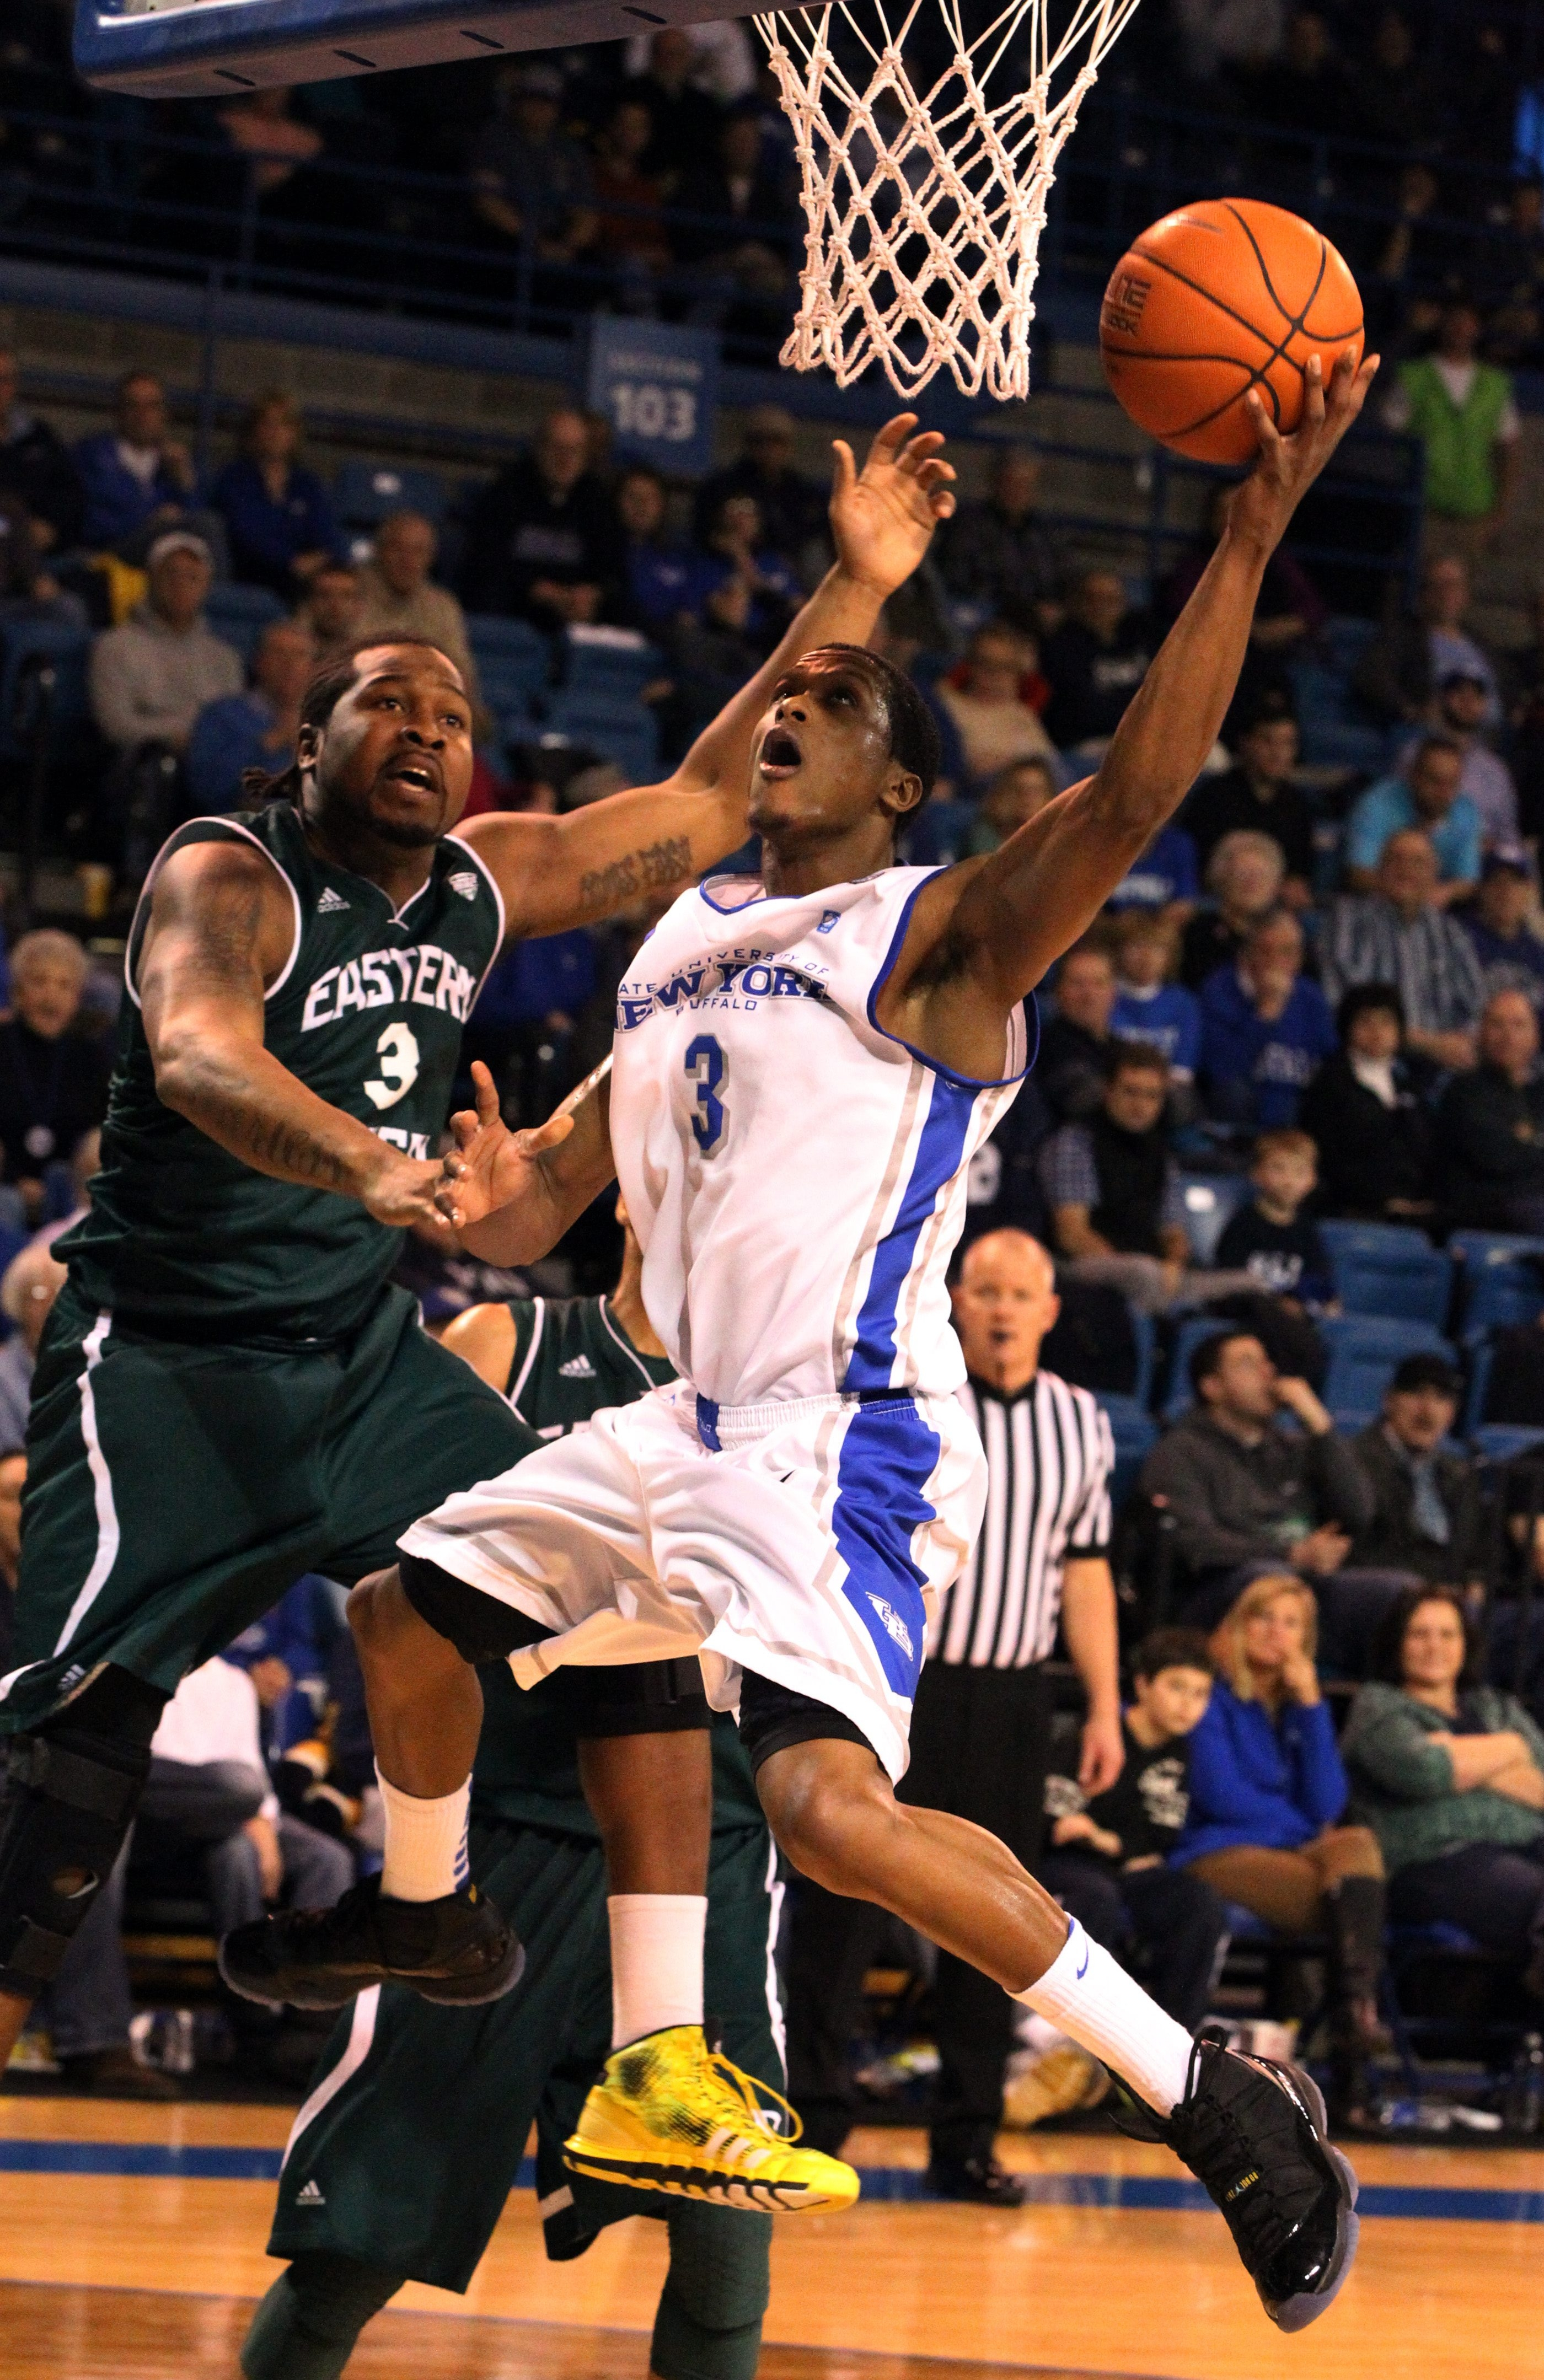 UB's Jarod Oldham is one of four players that have similar styles in the backcourt.